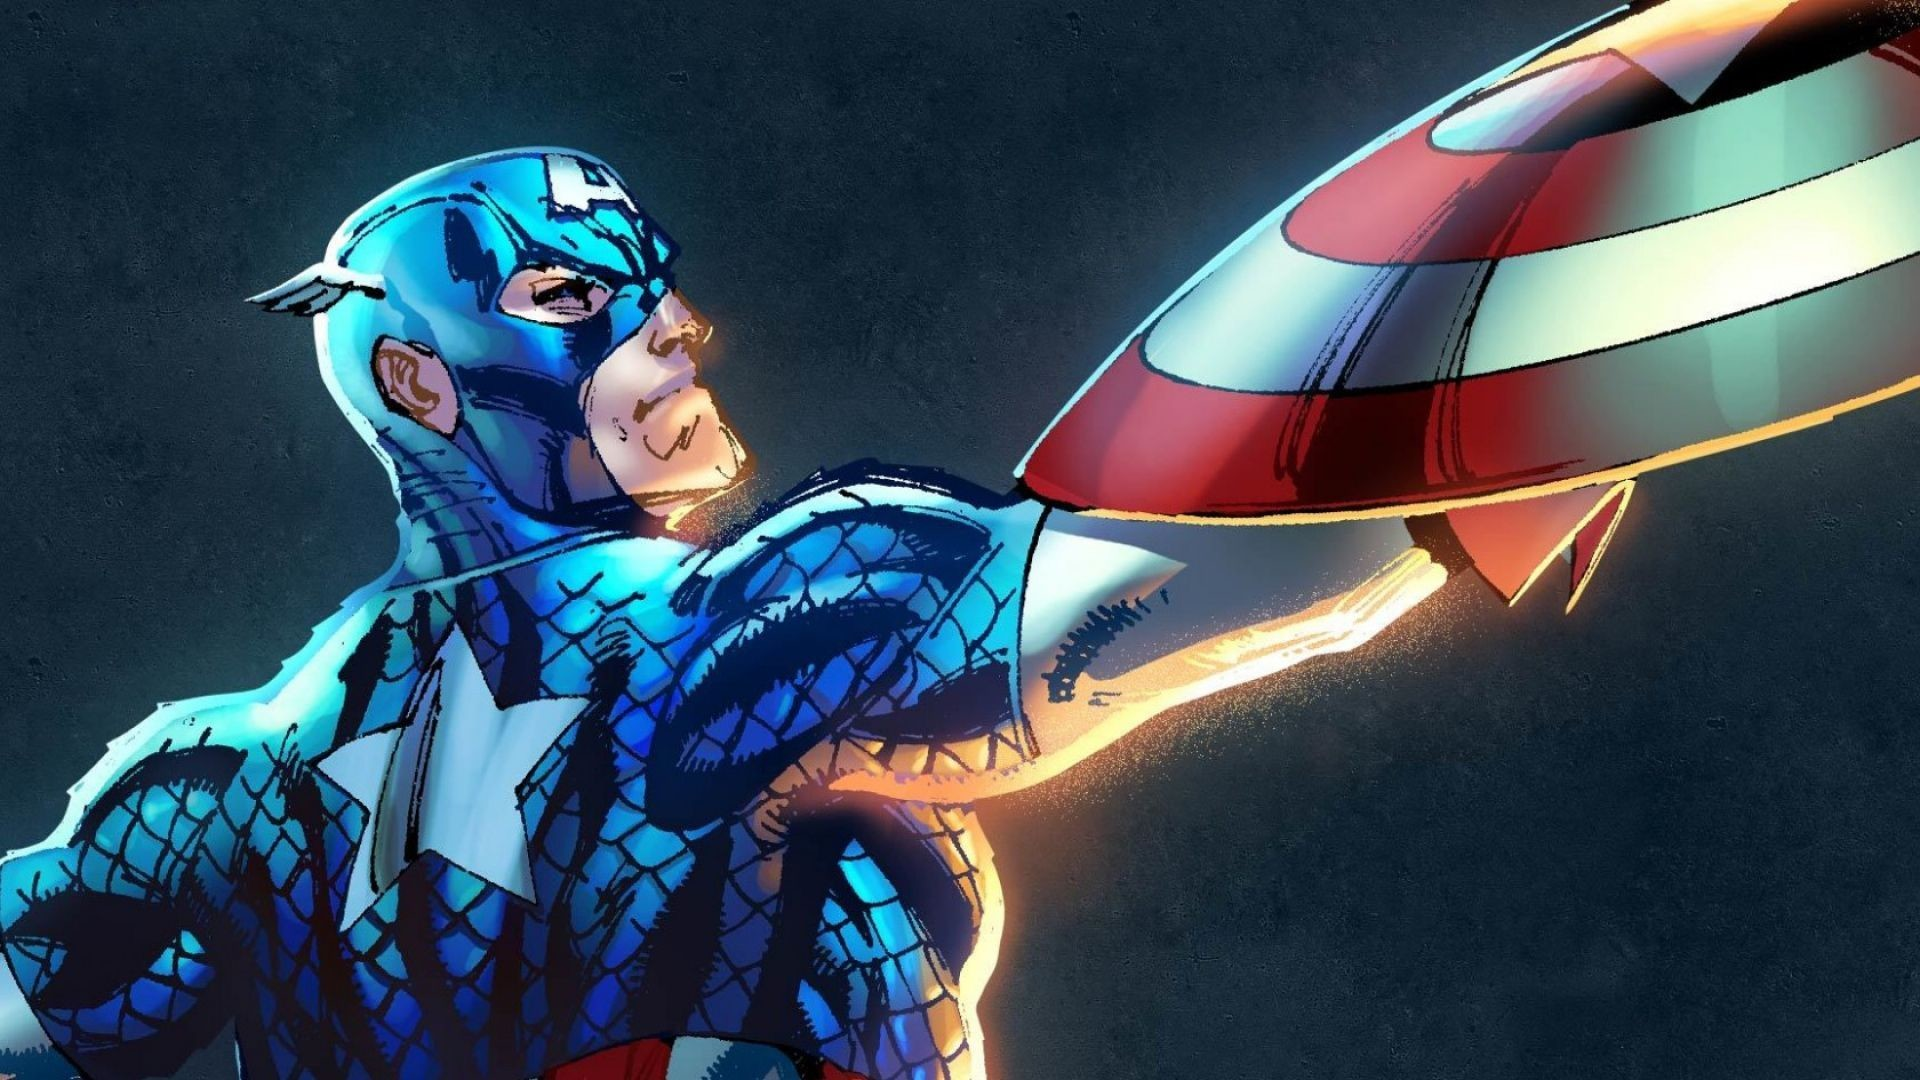 Res: 1920x1080, Full HD 1080p Marvel Wallpapers HD, Desktop Backgrounds